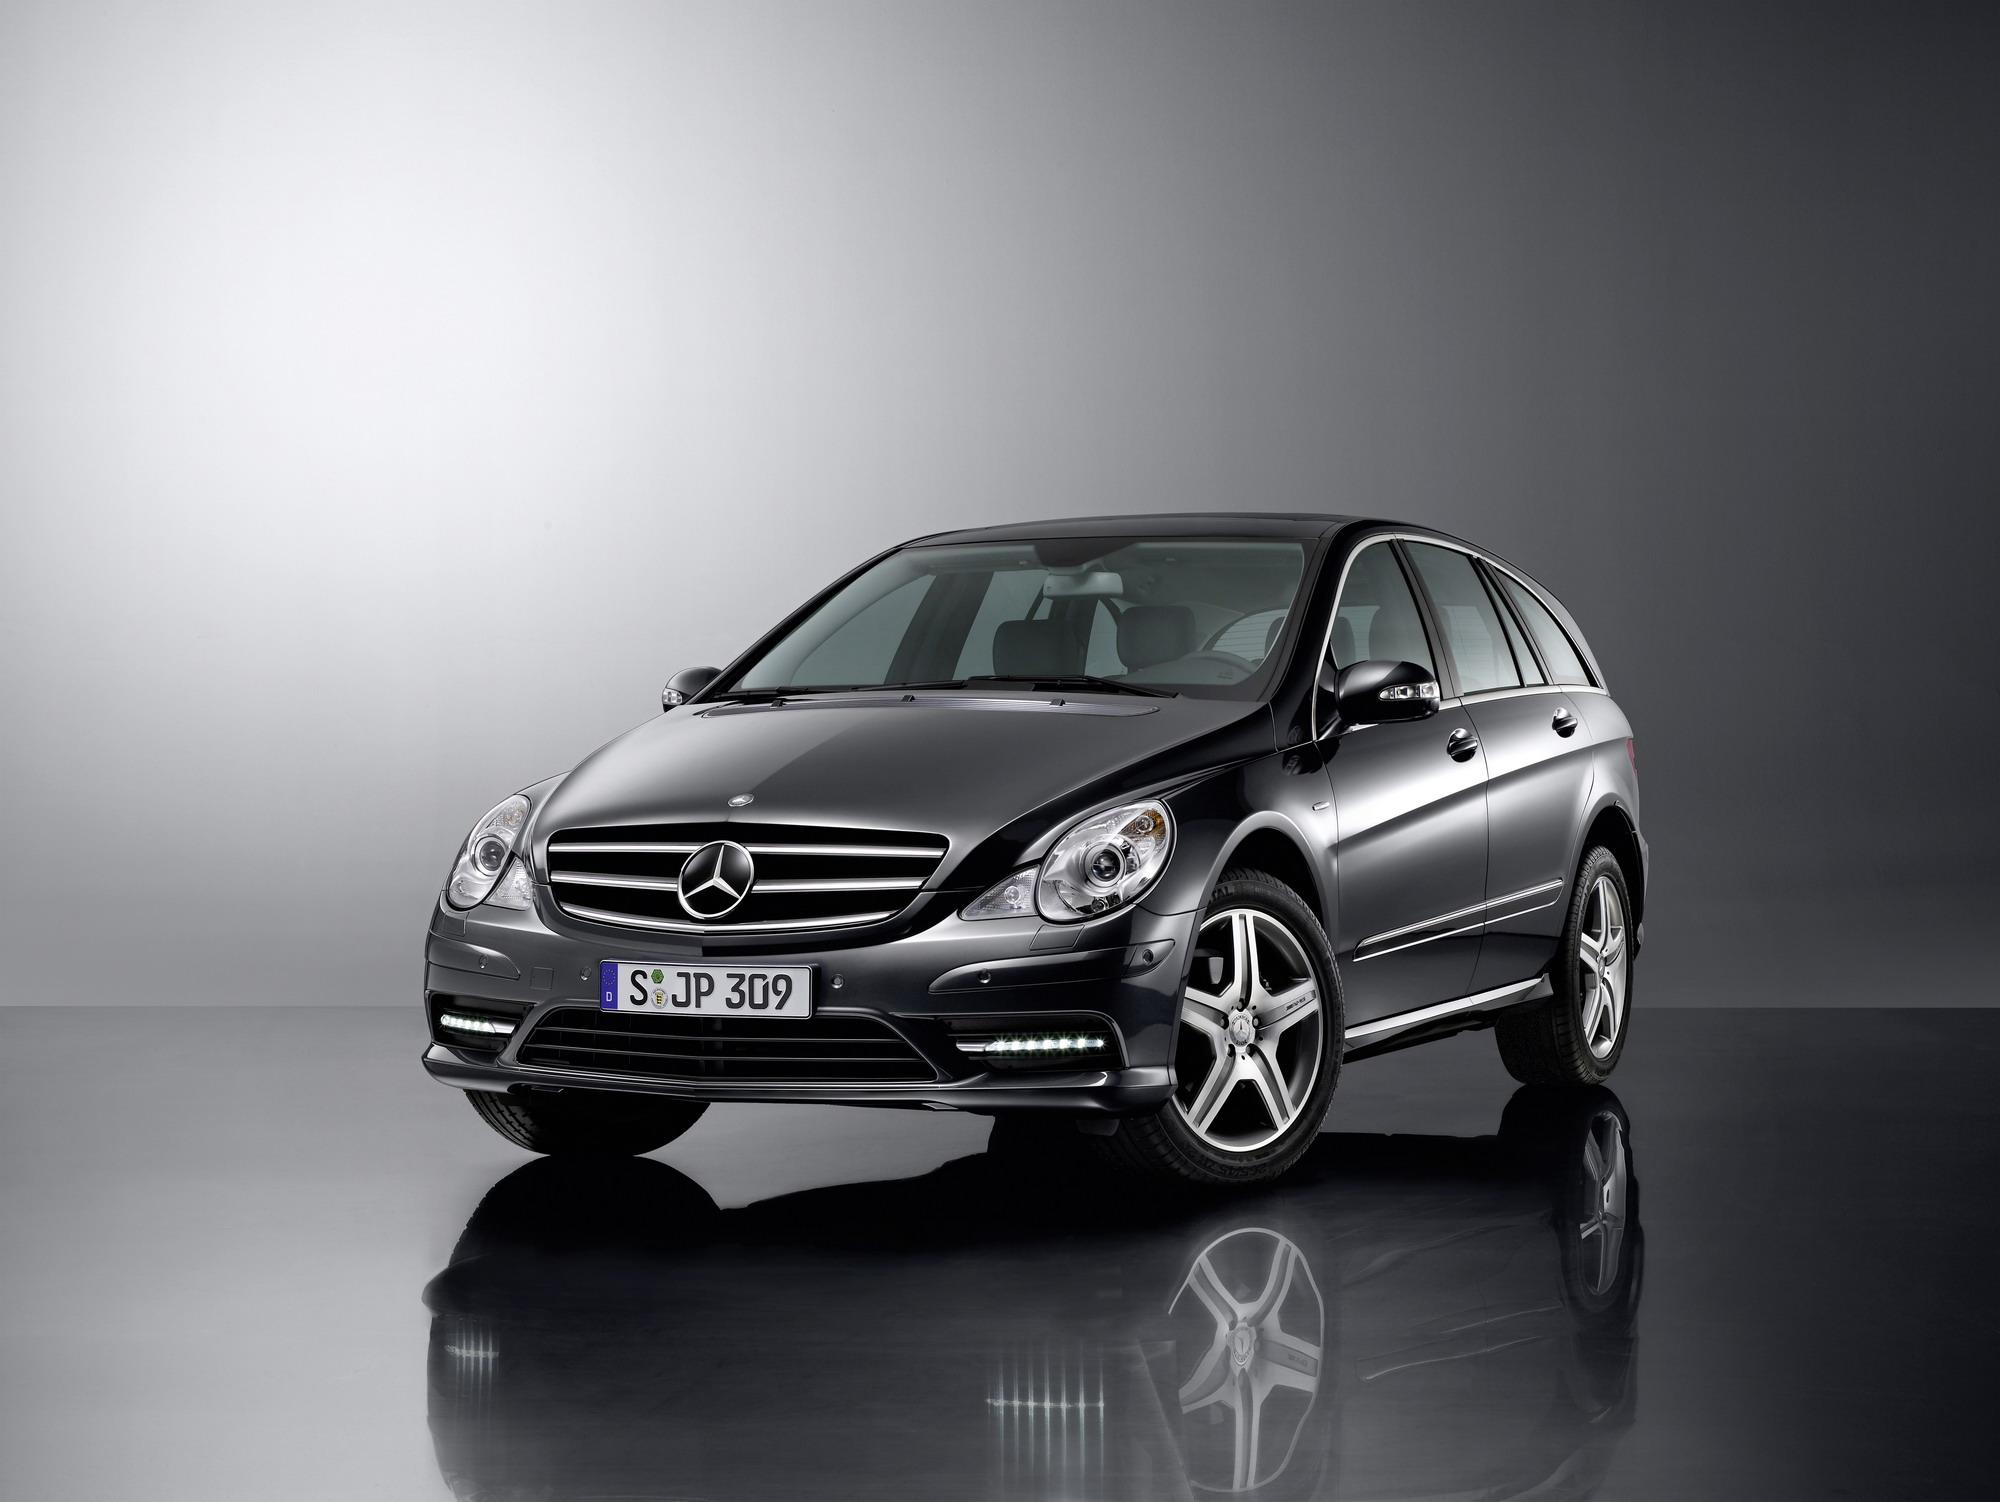 2009 mercedes r class grand edition review top speed. Black Bedroom Furniture Sets. Home Design Ideas